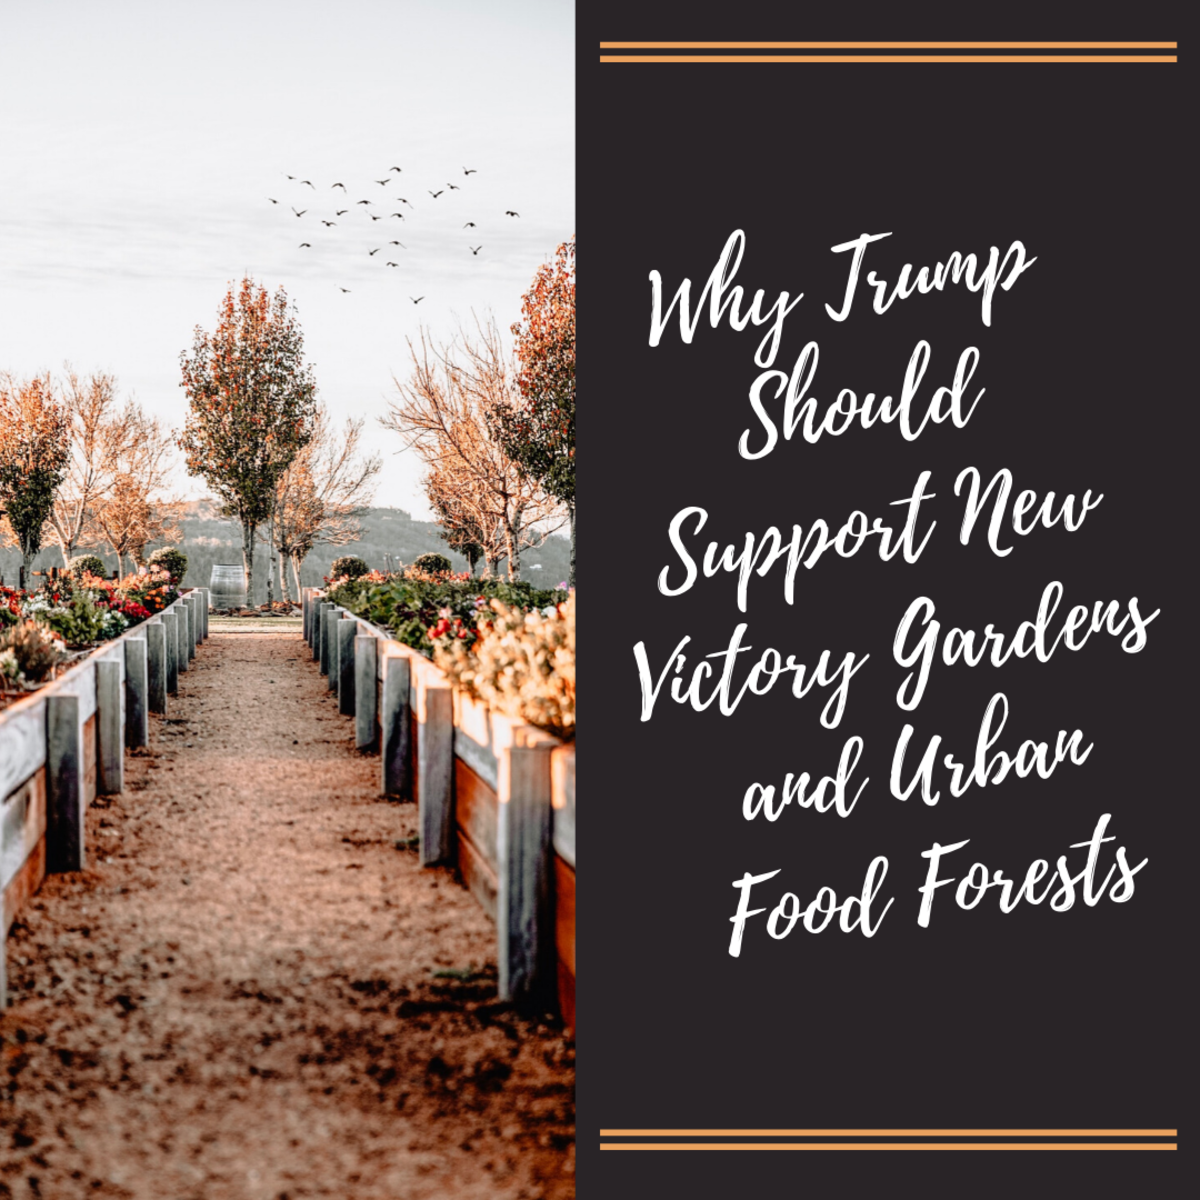 Why Trump Should Support Community Gardens and Urban Food Forests